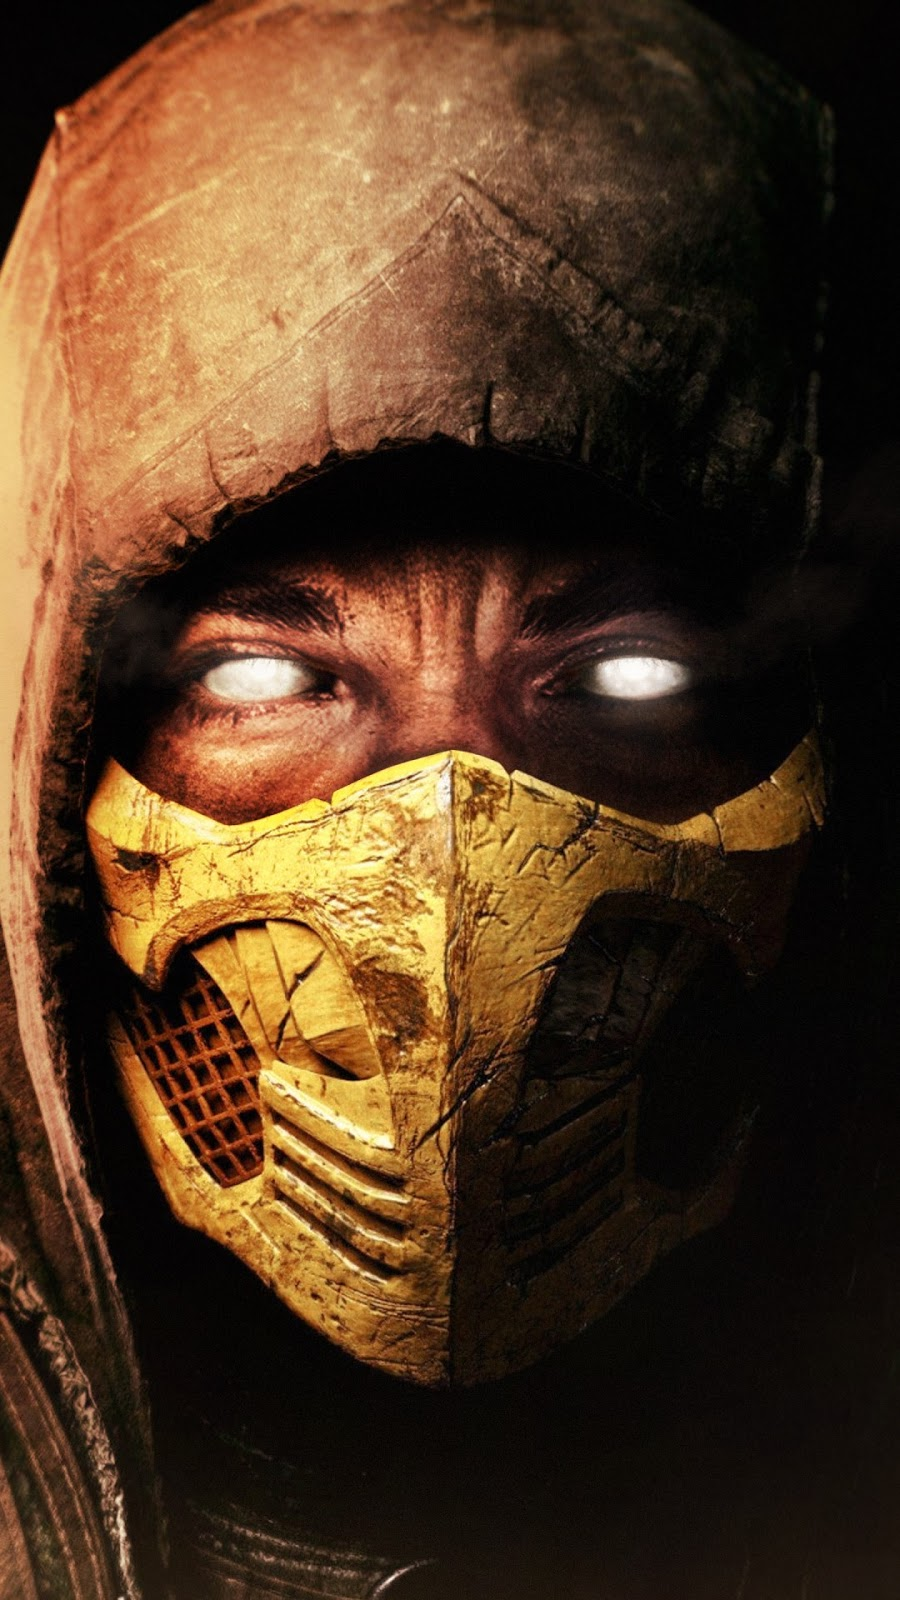 Papel de parede grátis Scorpion Mortal Kombat X para PC, Notebook, iPhone, Android e Tablet.